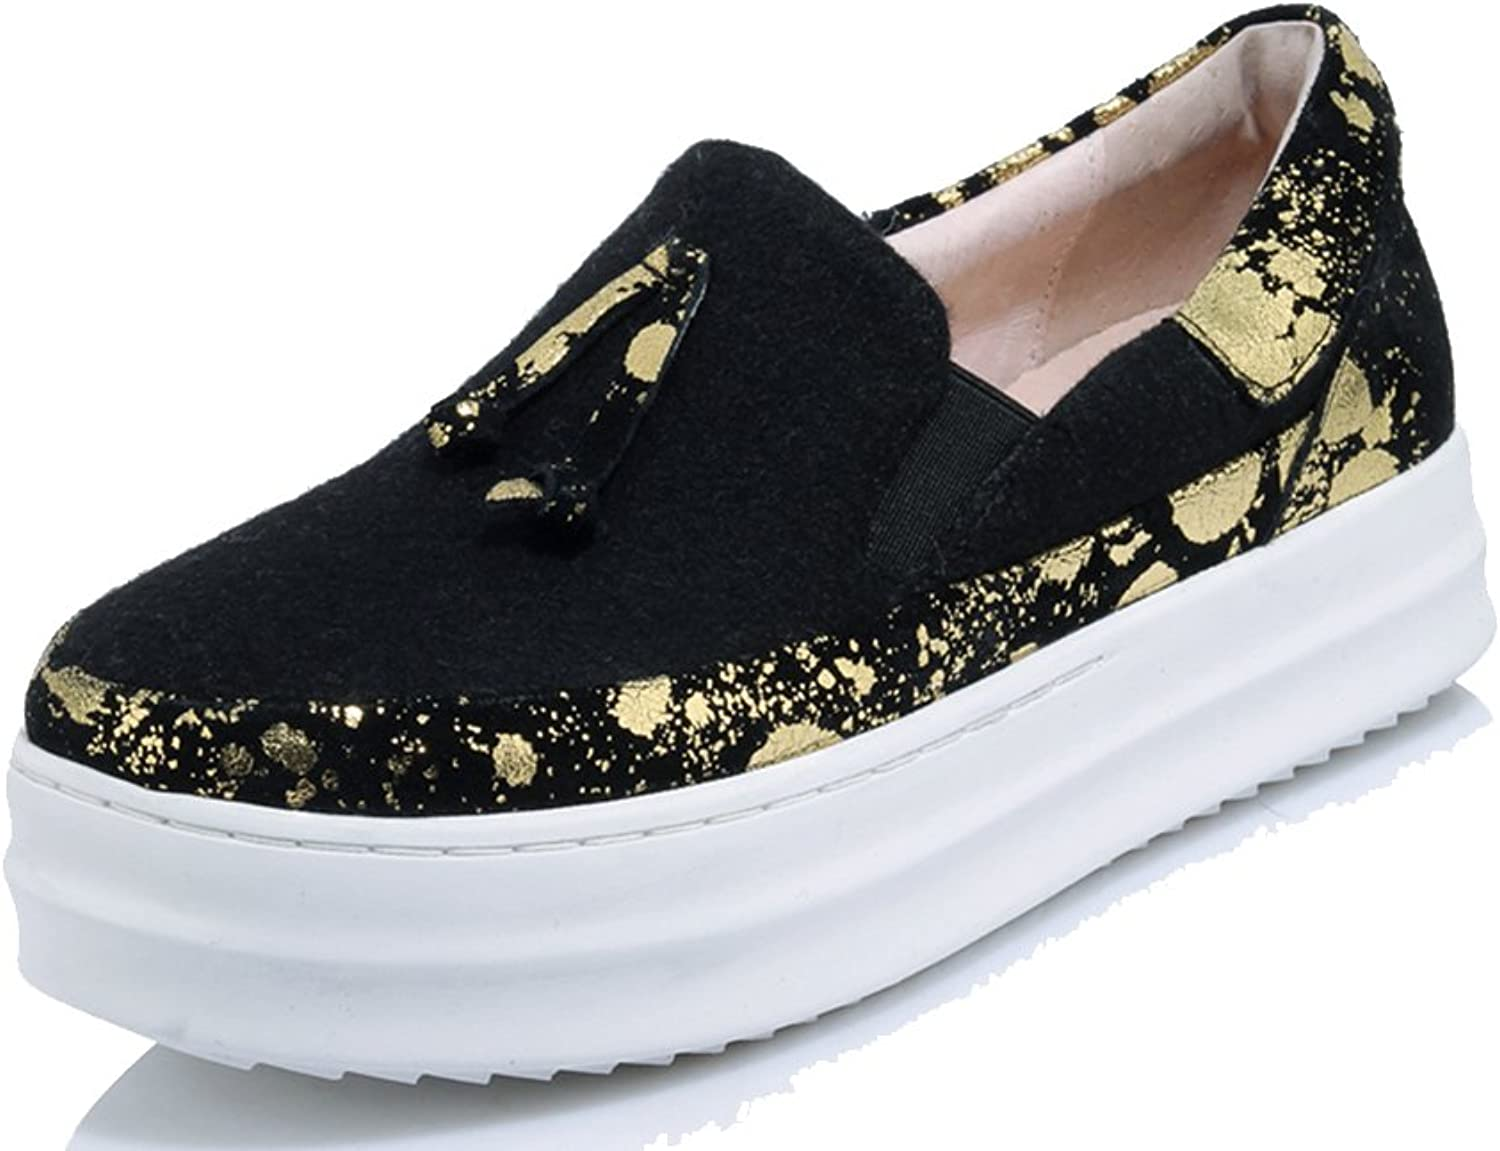 A-BUYBEA Women's Casual Platform Vegan Dress Loafer shoes with Tassels 4.5-9.5